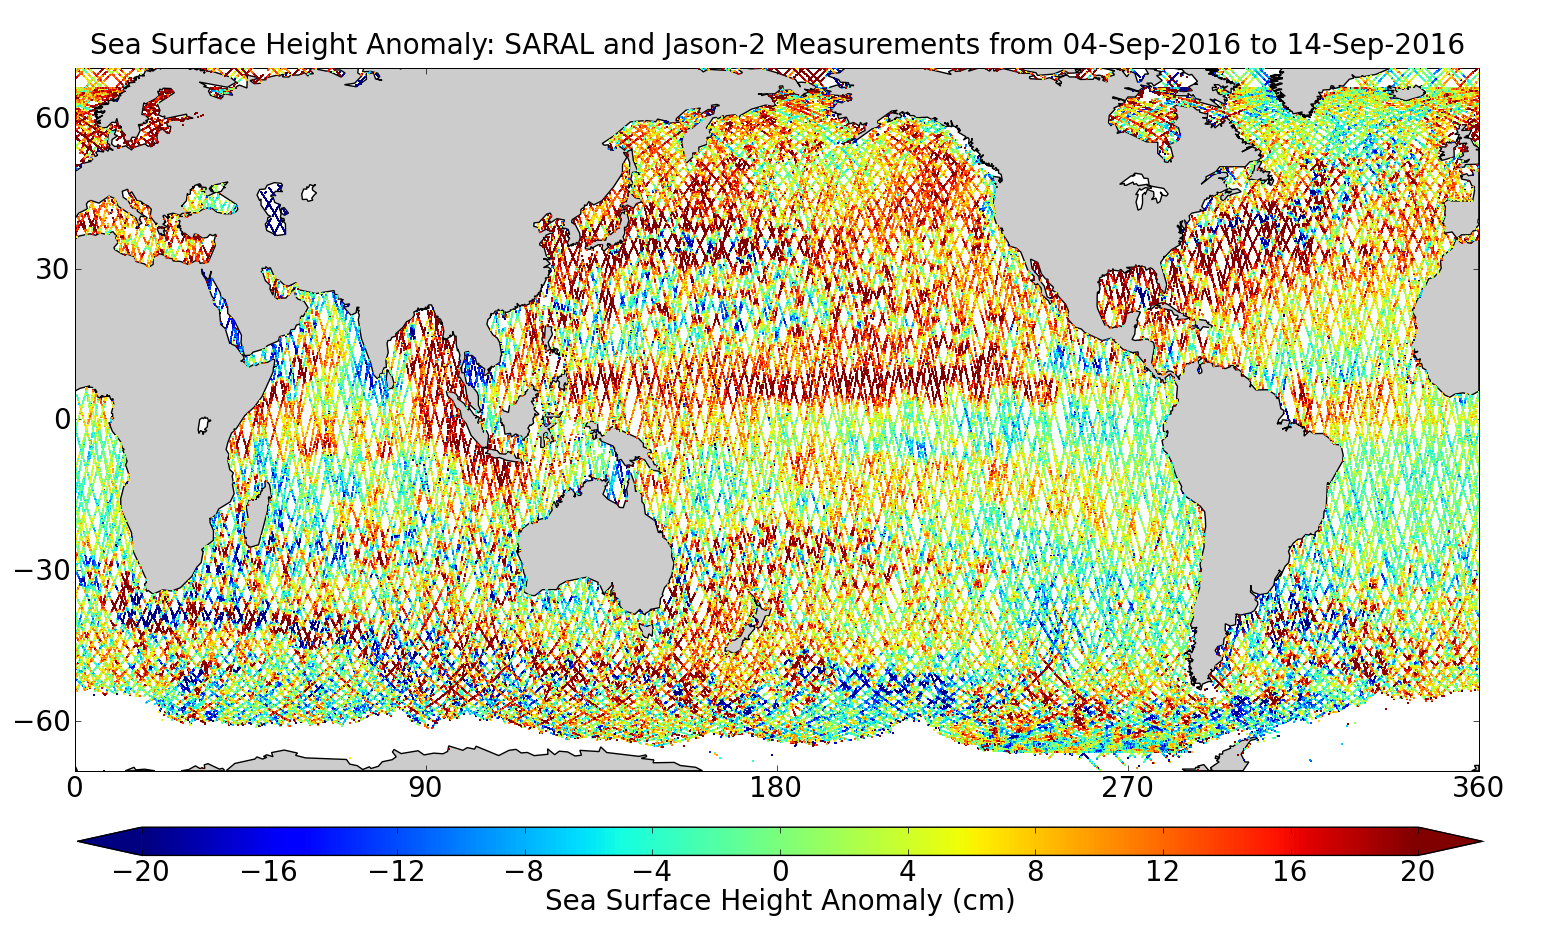 Sea Surface Height Anomaly: SARAL and Jason-2 Measurements from 04-Sep-2016 to 14-Sep-2016